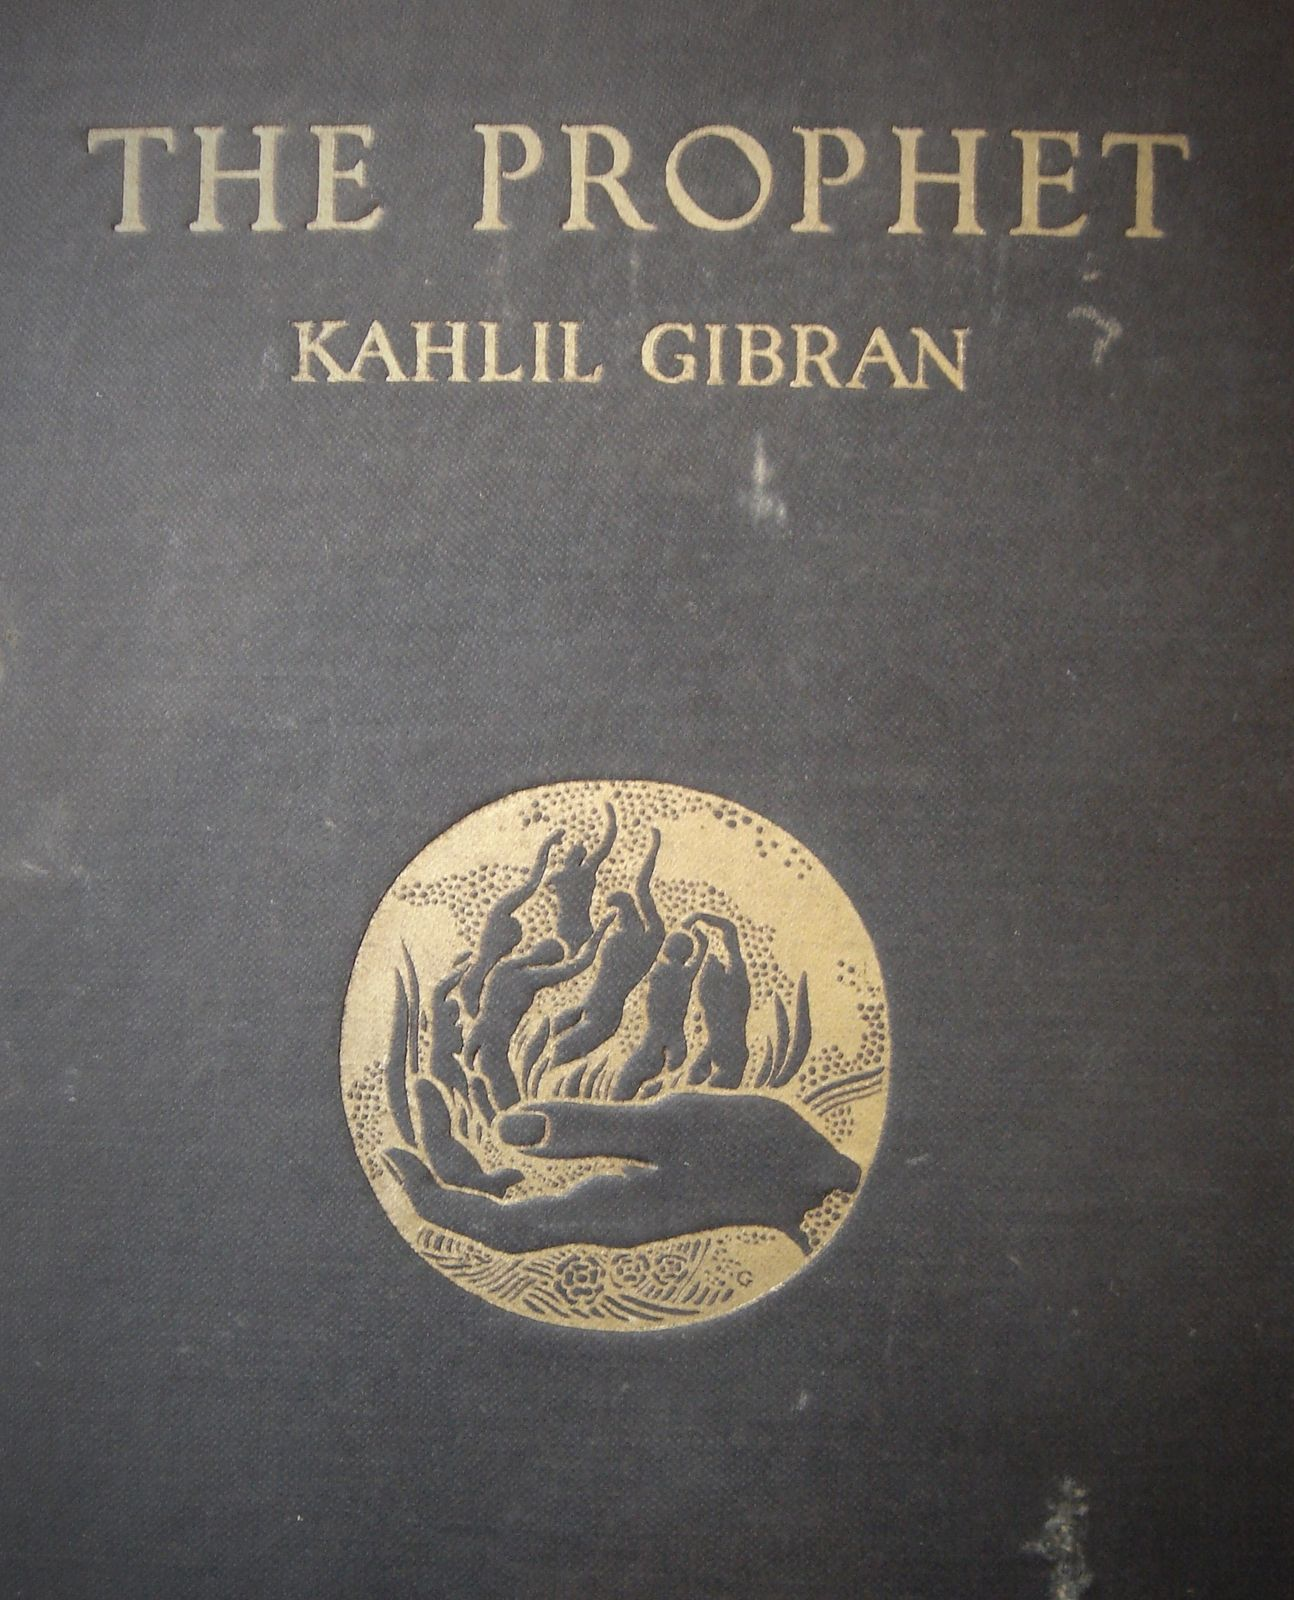 The Prophet By Kahlil Gibran One Of The Most Famous Books Of All